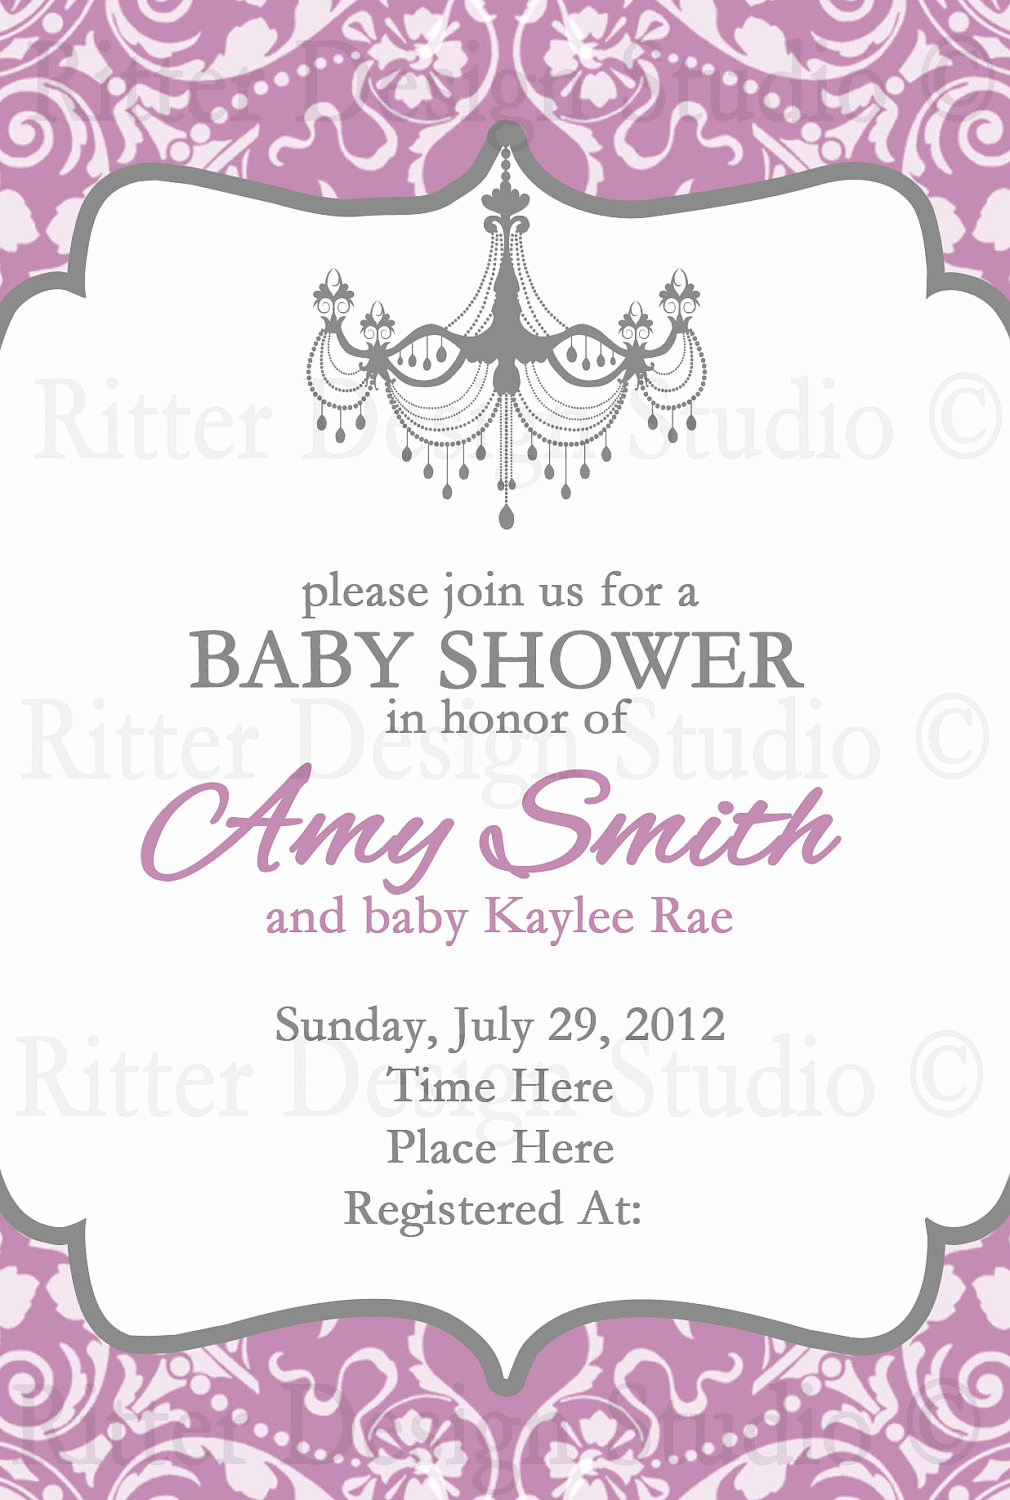 Baby Shower Invitation Messages Awesome Elegant Baby Shower Invitation by Ritterdesignstudio On Etsy